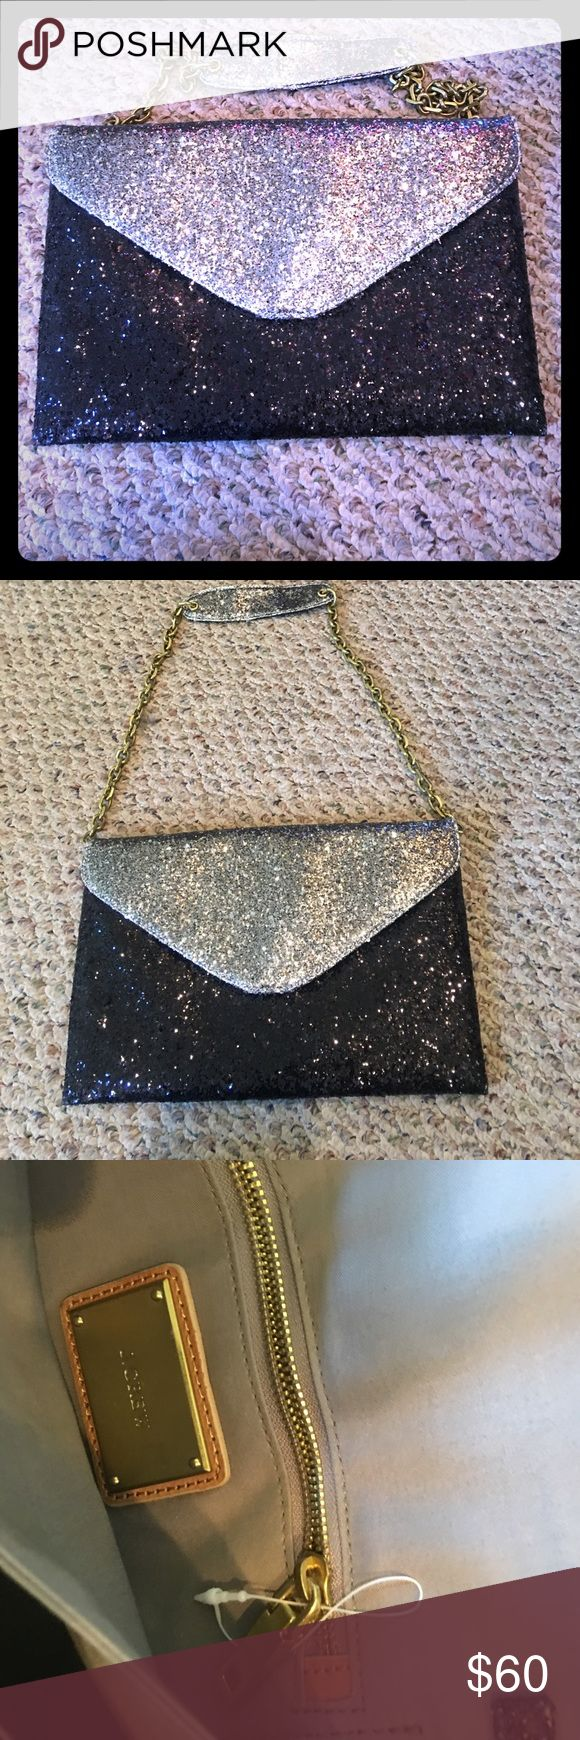 NWOT J. Crew Glitter Envelope Bag This listing is for one NWOT J. Crew black and silver glitter envelope bag. It has a bronze strap which can easily be tucked in so that it can be used as a clutch. All reasonable offers will be considered! **BUNDLE ANY PURSE WITH ANOTHER ITEM AND GET AN EXTRA 5% OFF** J. Crew Bags